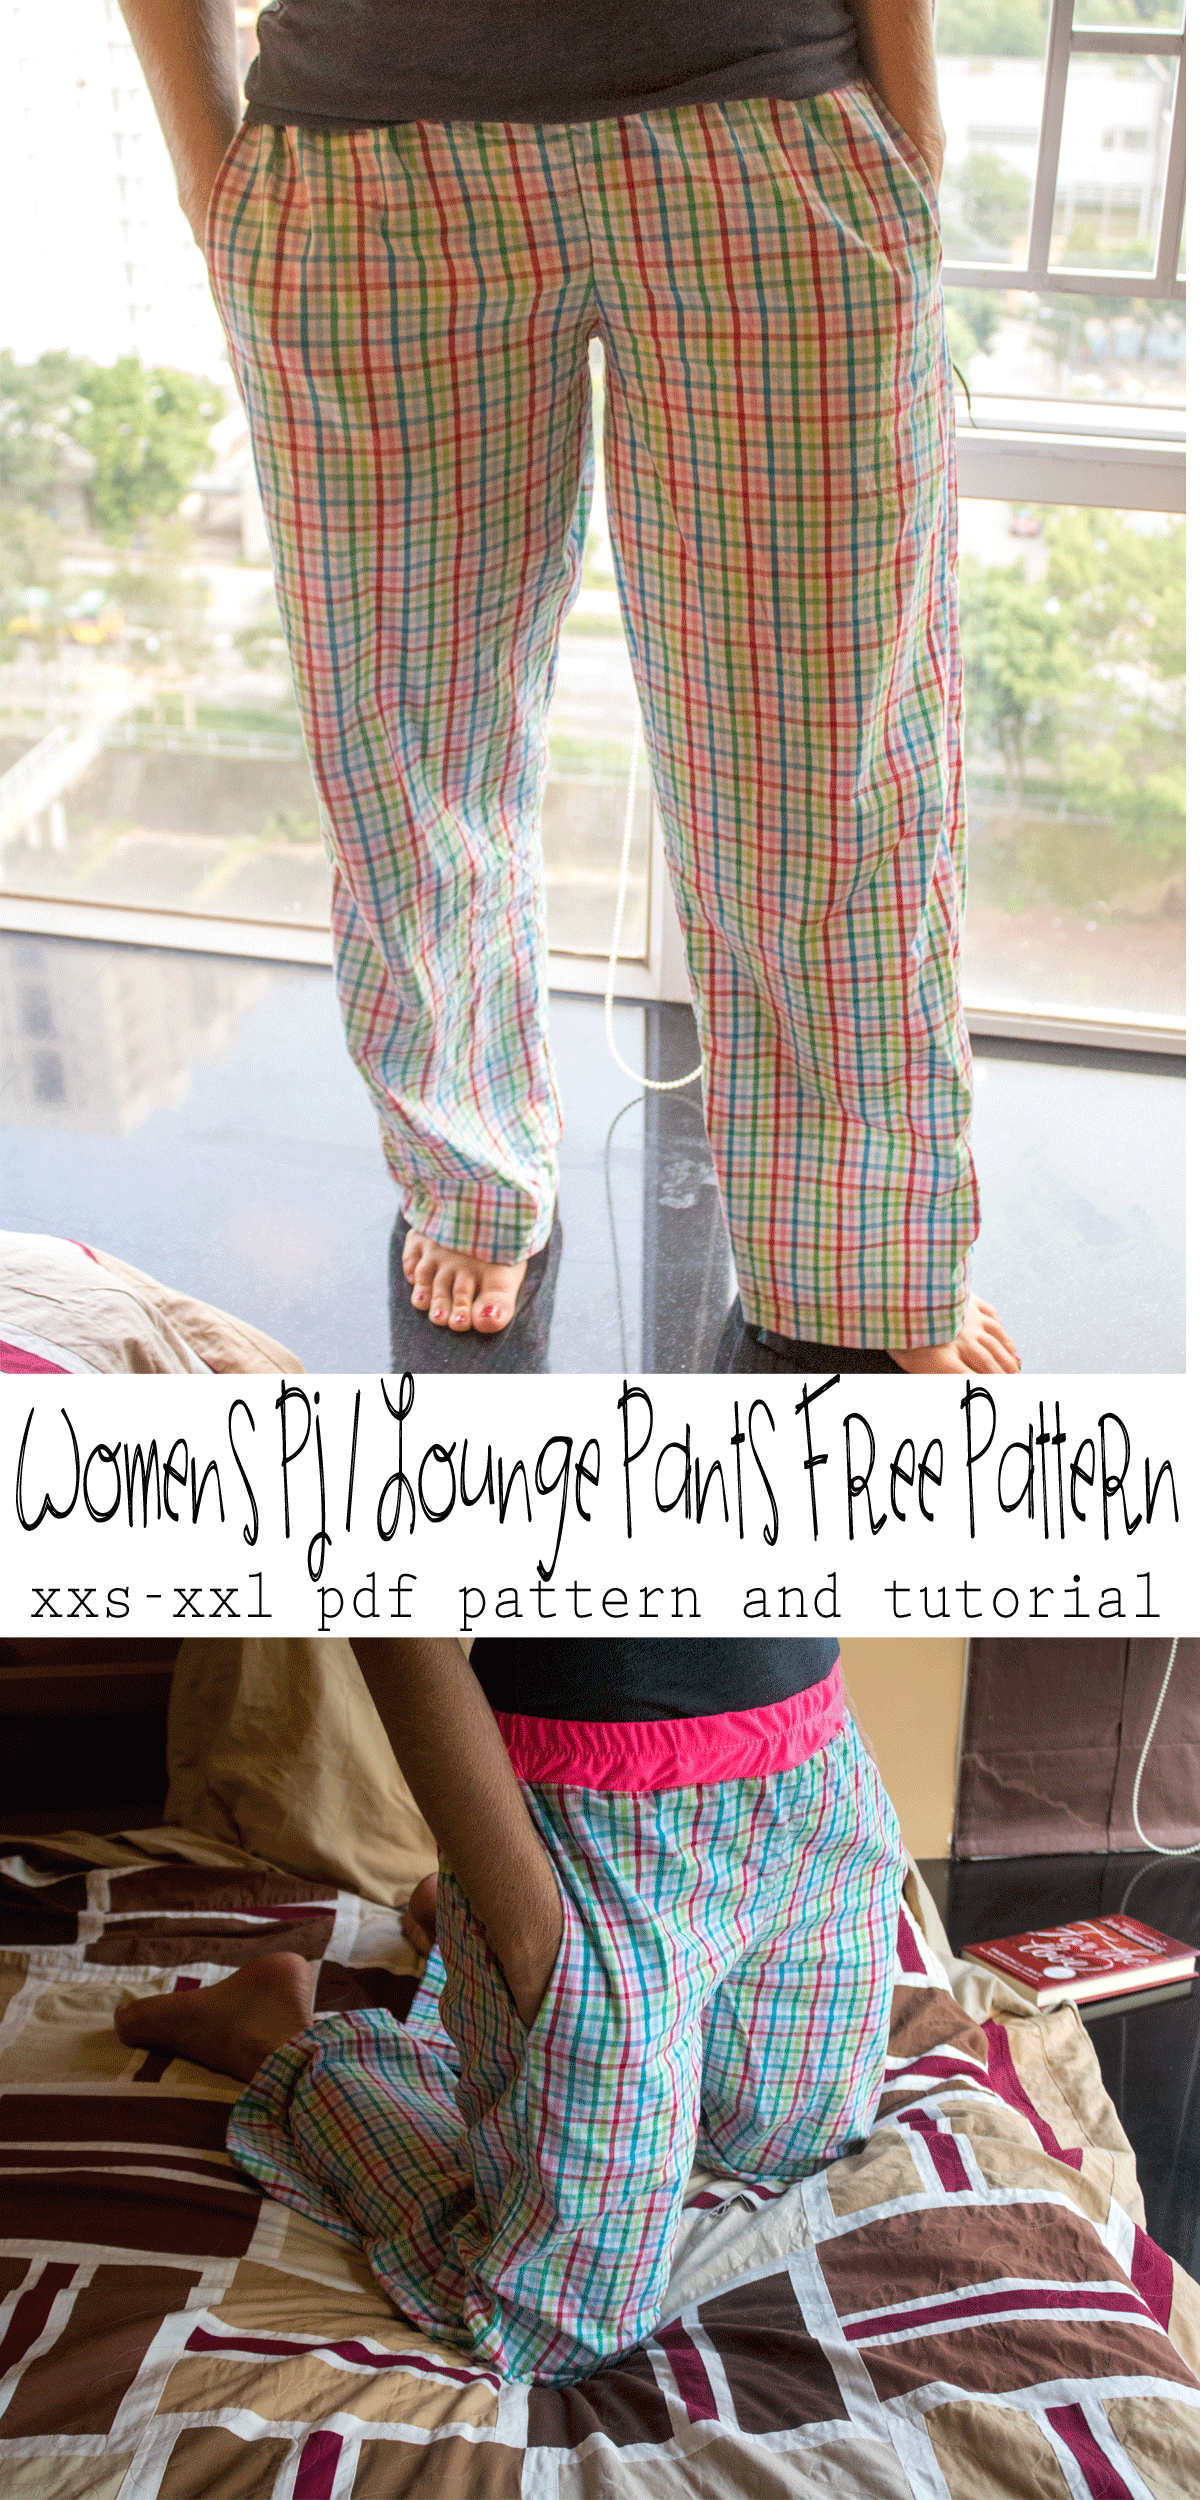 pj lounge pants free pattern xxs-xxl from Life Sew Savory printable pattern and tutorial